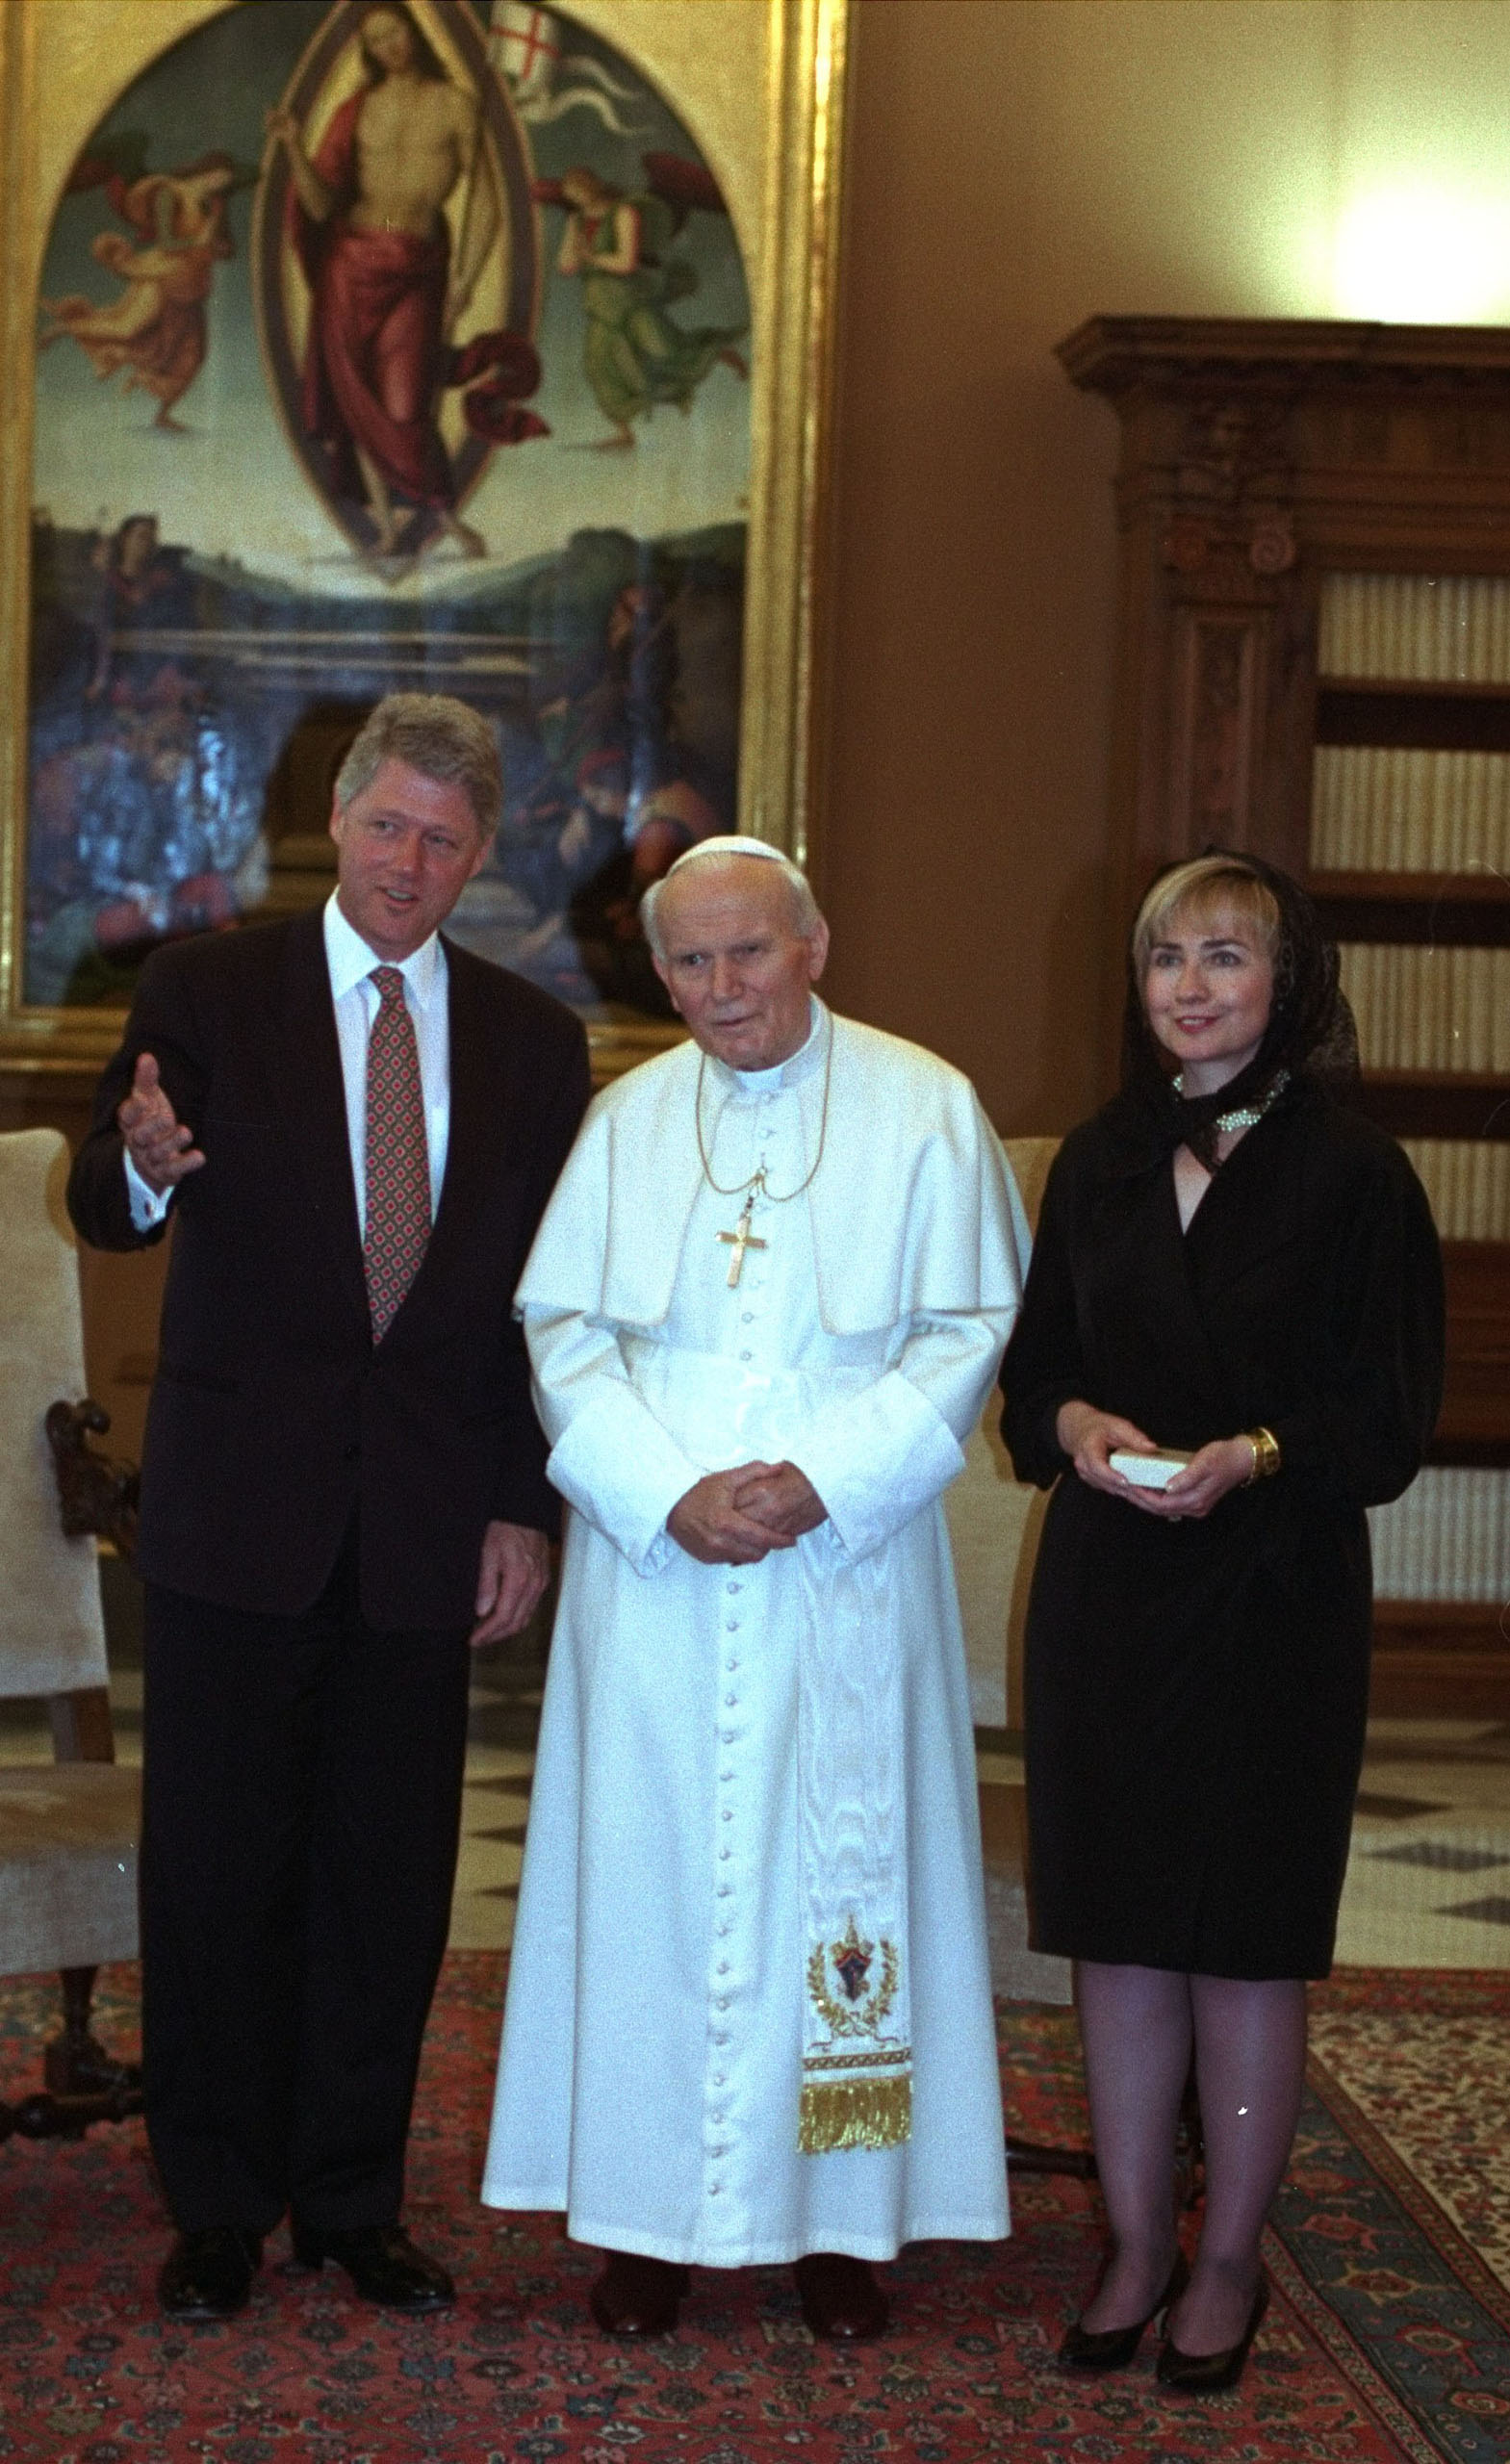 President and Mrs. Clinton meet with Pope John Paul II at the Vatican Thursday June 2, 1994.